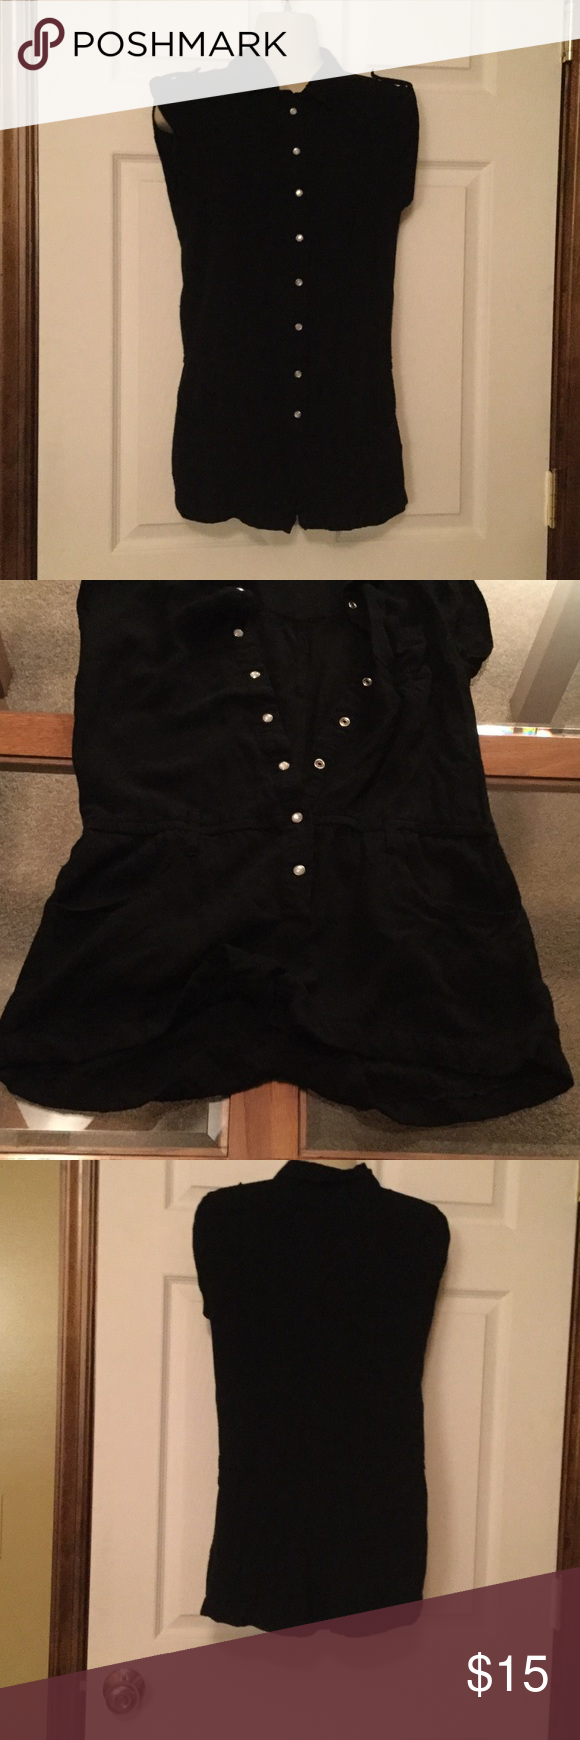 Akualani Romper Black with silver snaps down the front.  Has belt loops and 2 pockets in front.  100% Viscose made in China. Akualani Shorts